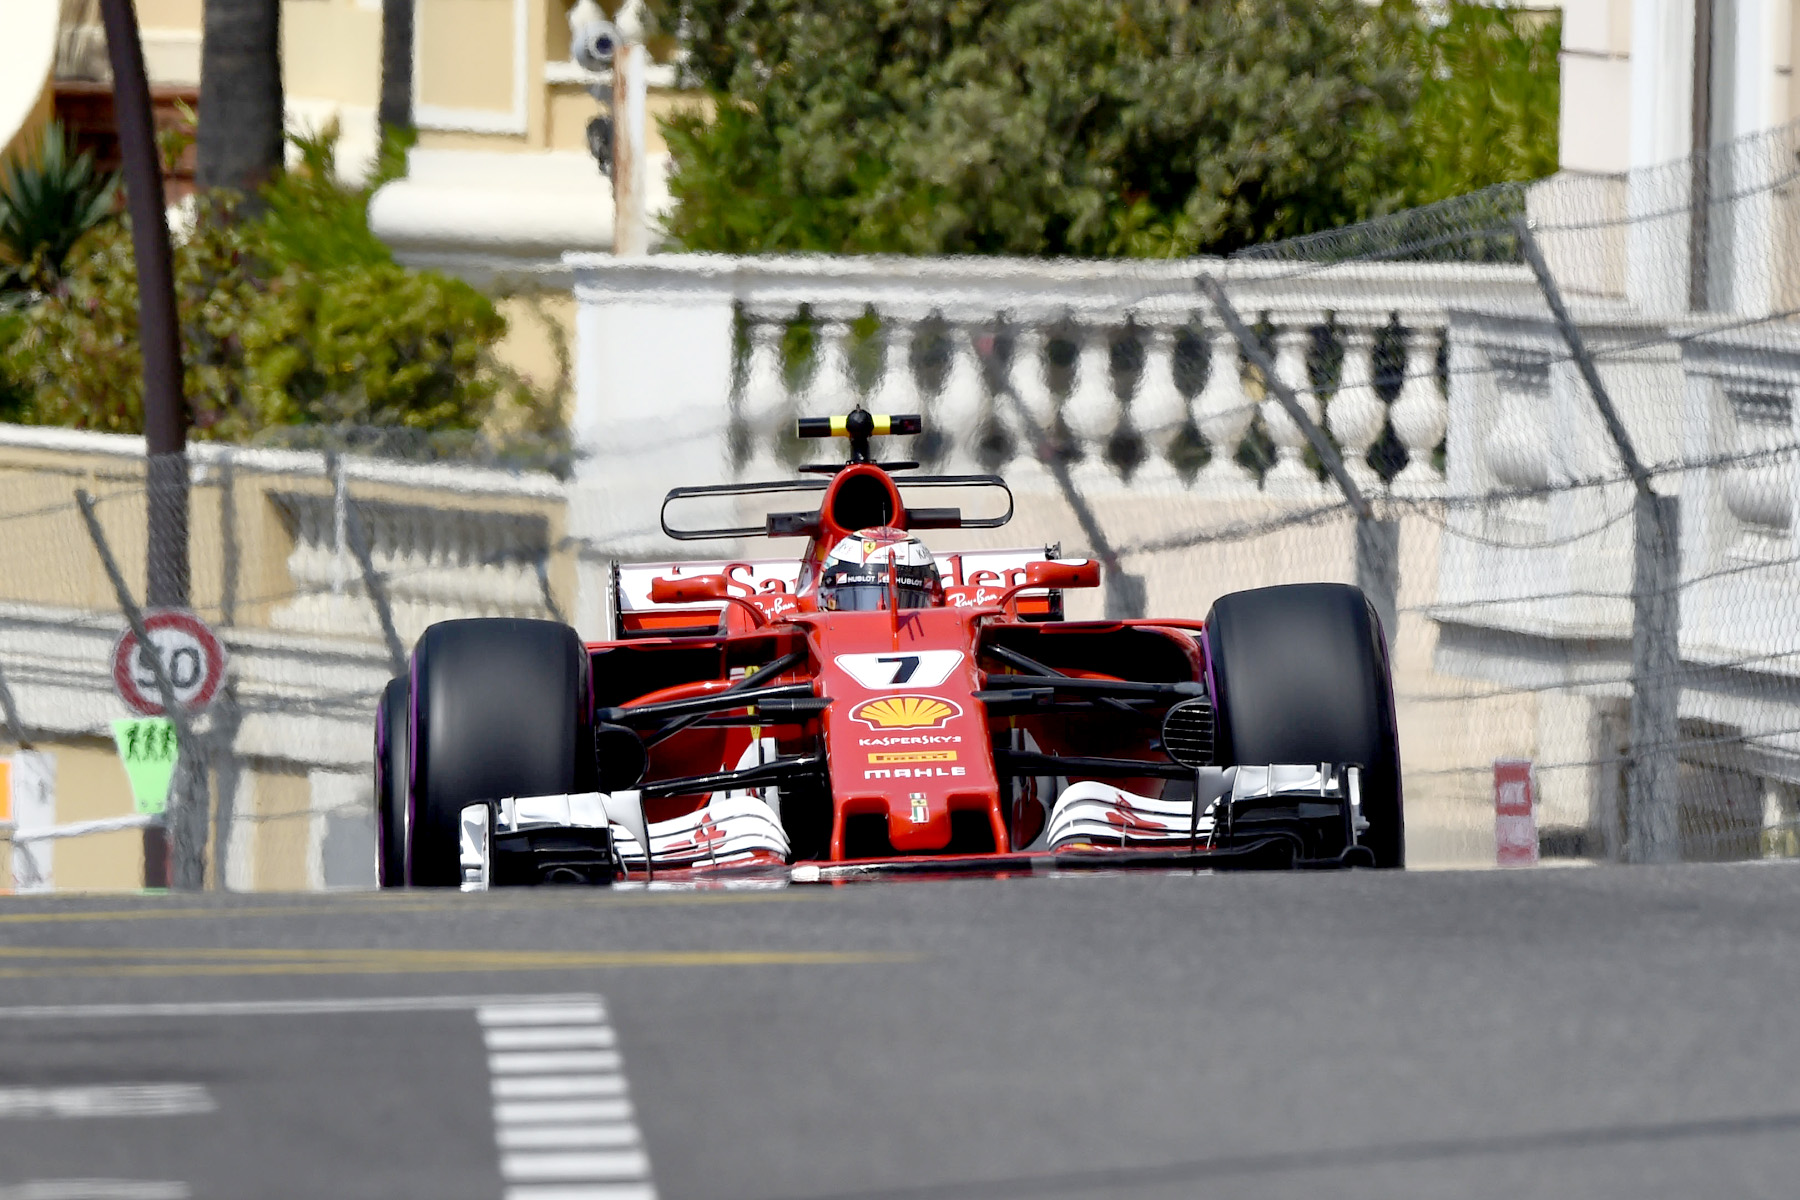 Kimi Raikkonen takes his Ferrari to pole position in Monaco